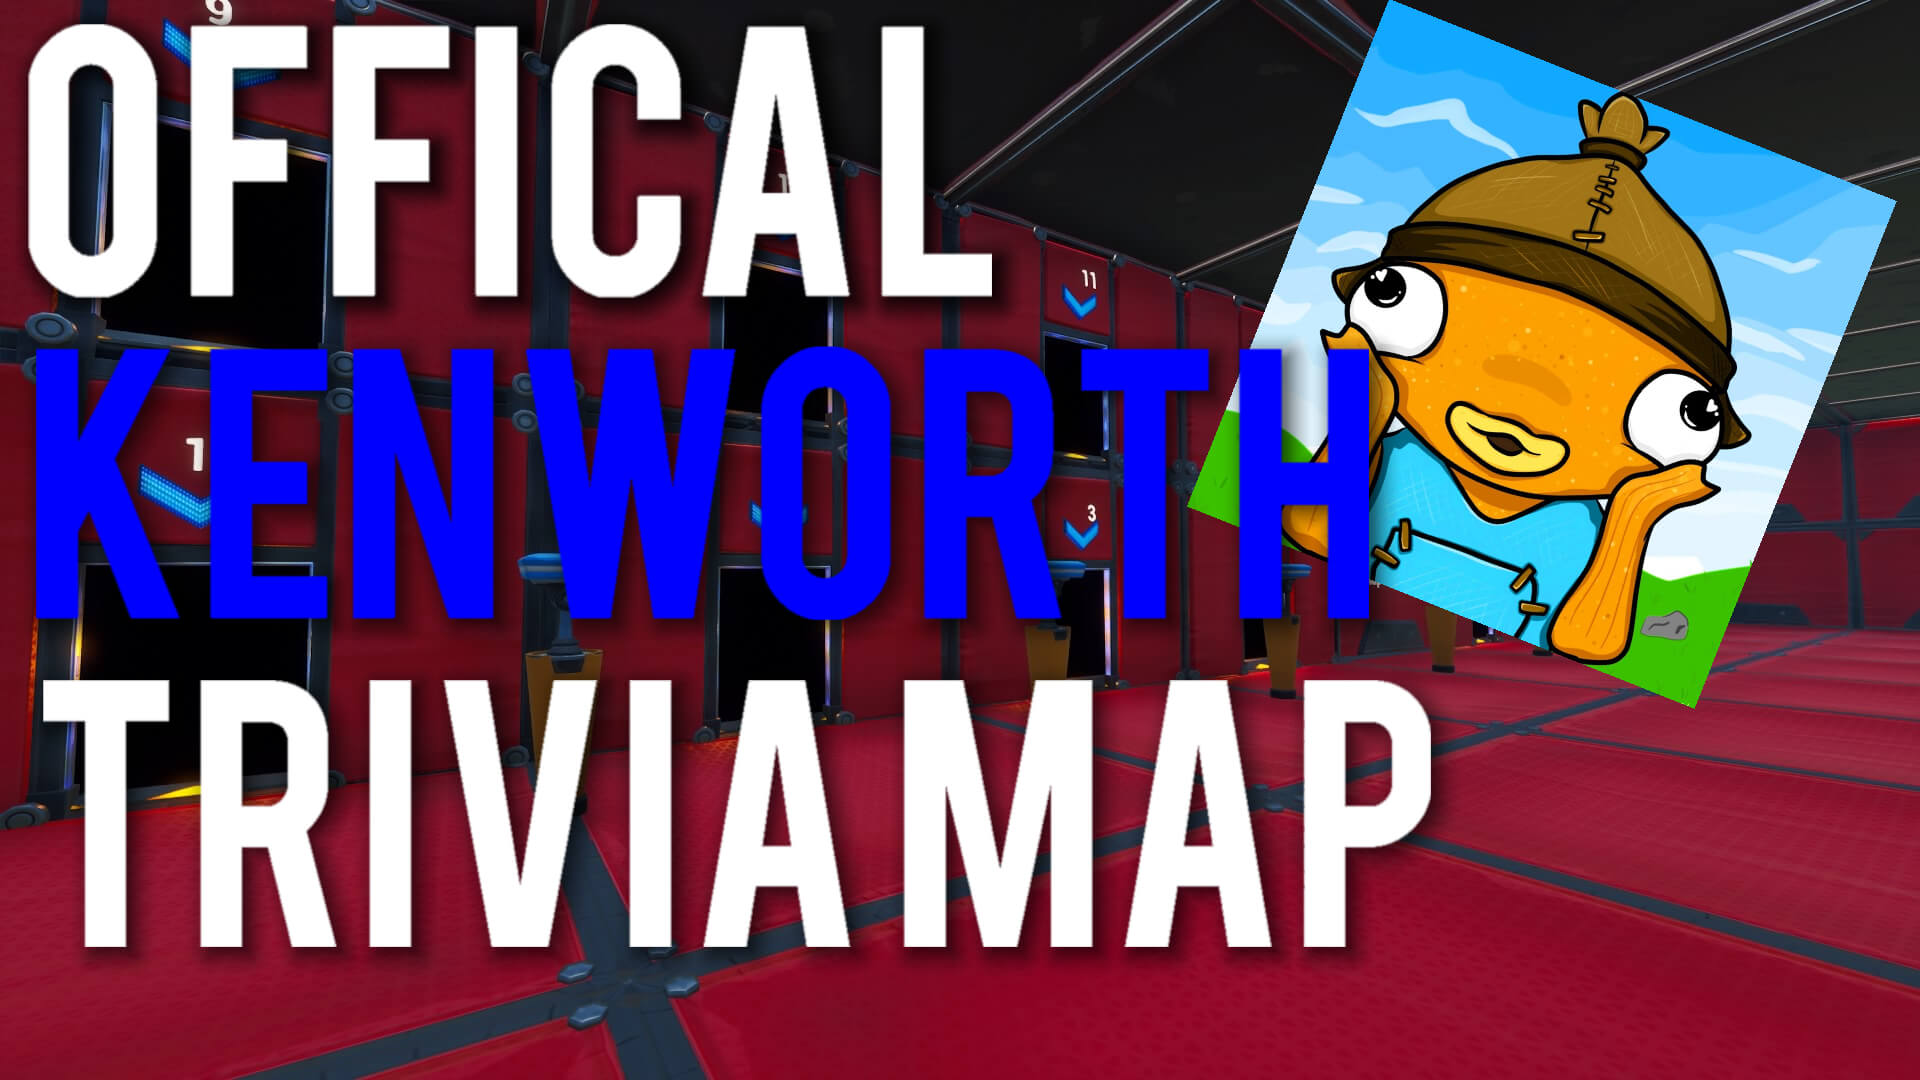 THE OFFICIAL KENWORTH TRIVIA ESCAPE!